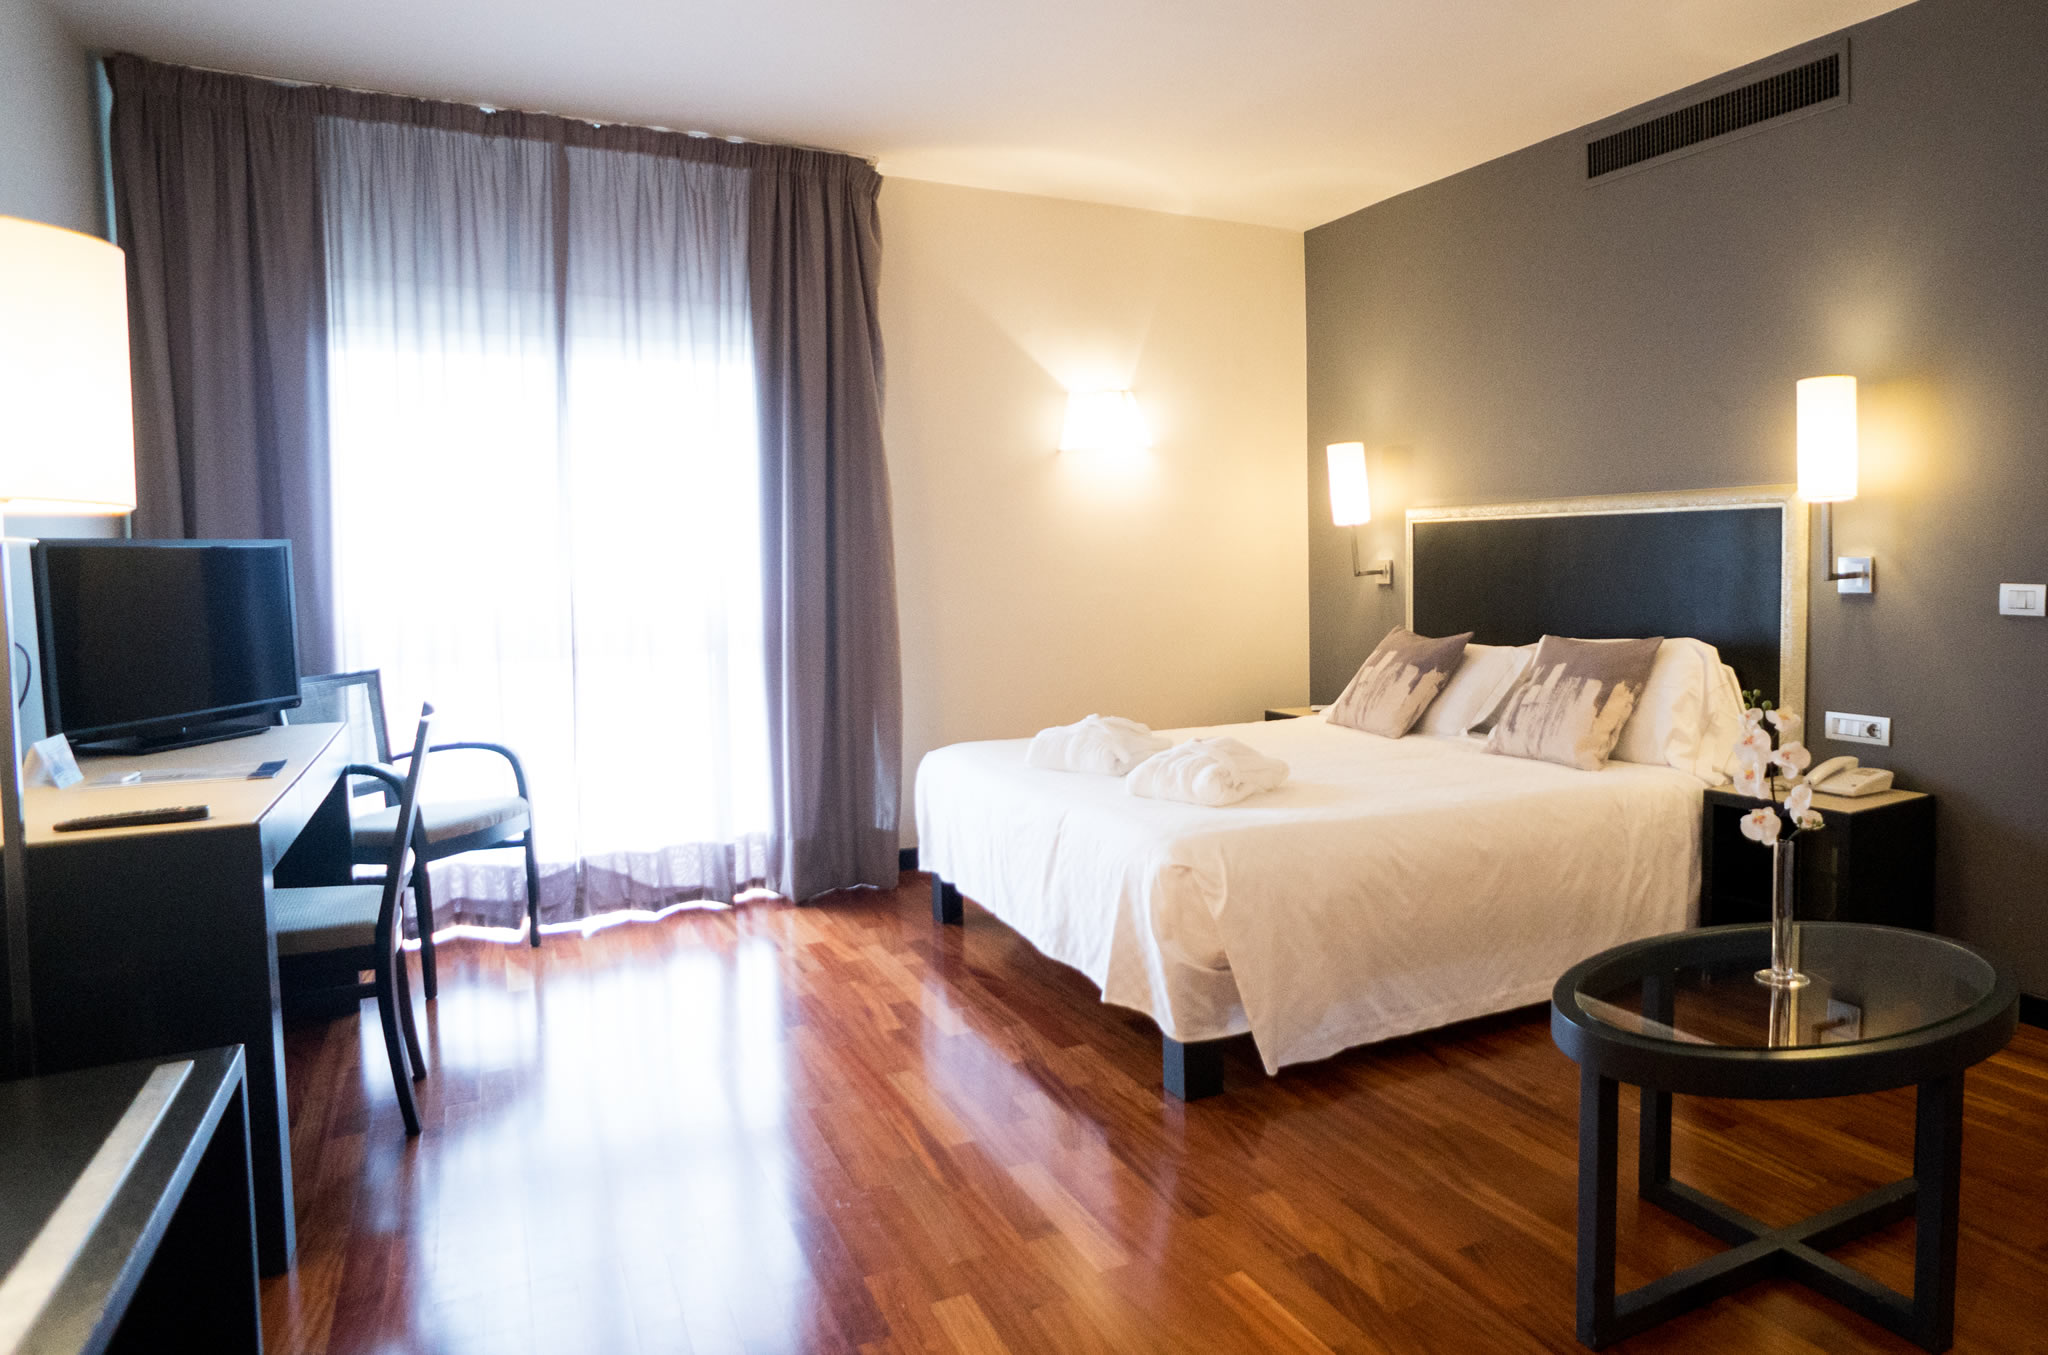 Rooms: Plaza Hotel Catania